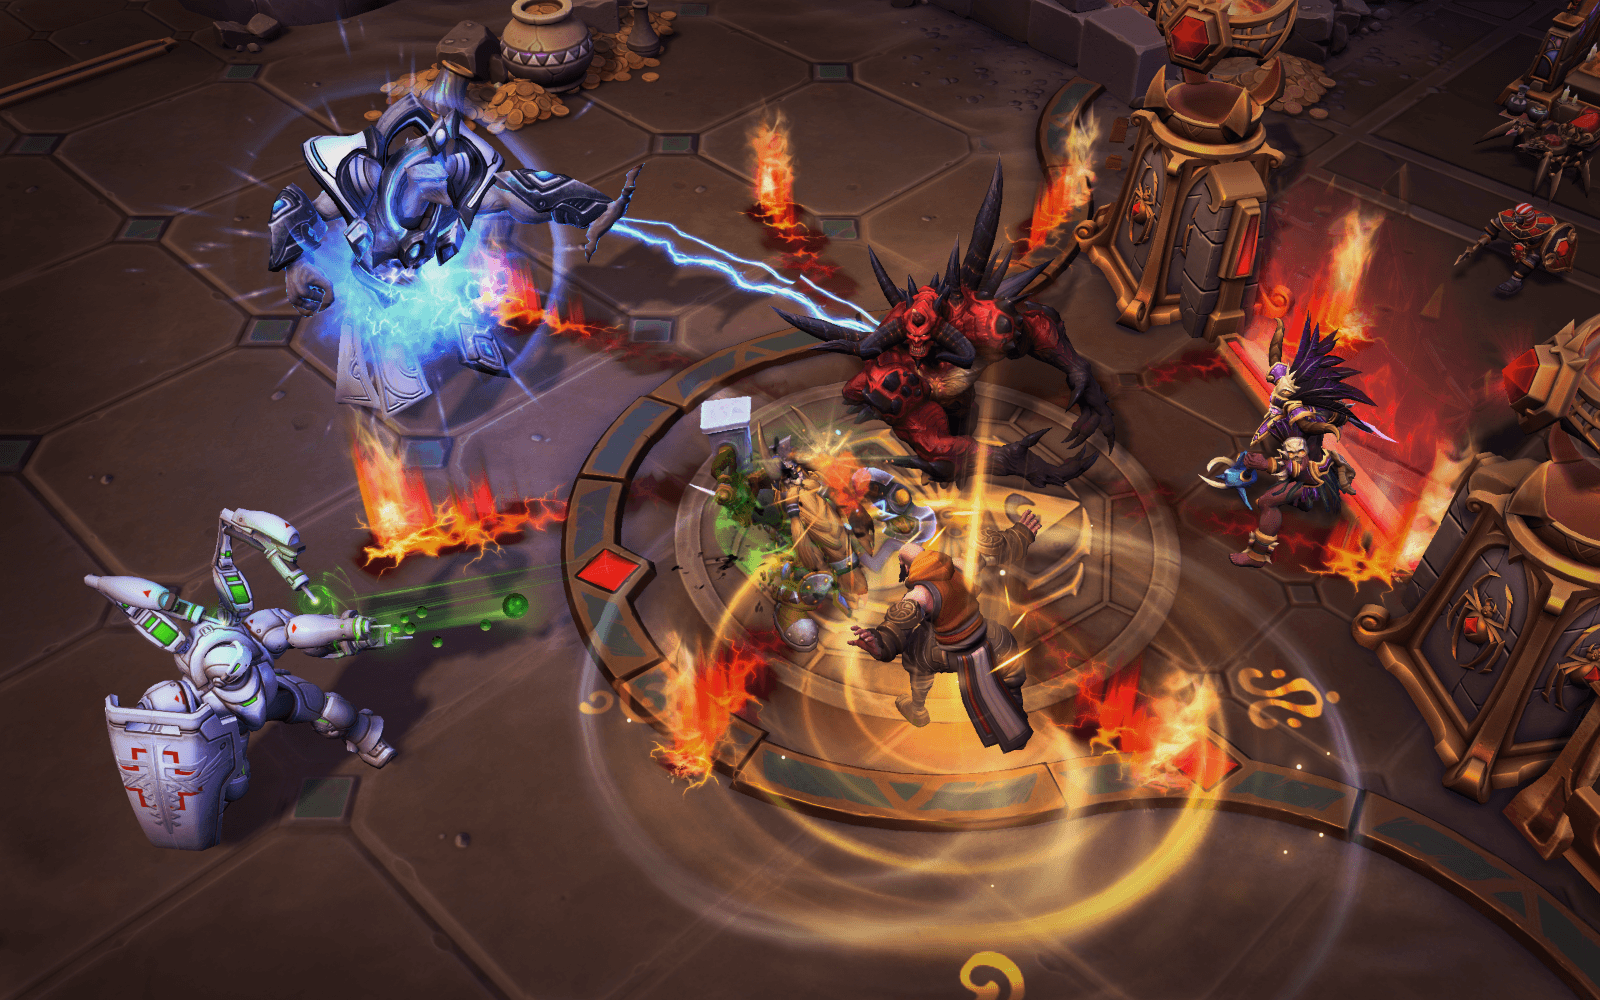 Heroes of the Storm Reveals New Lost Cavern Battleground